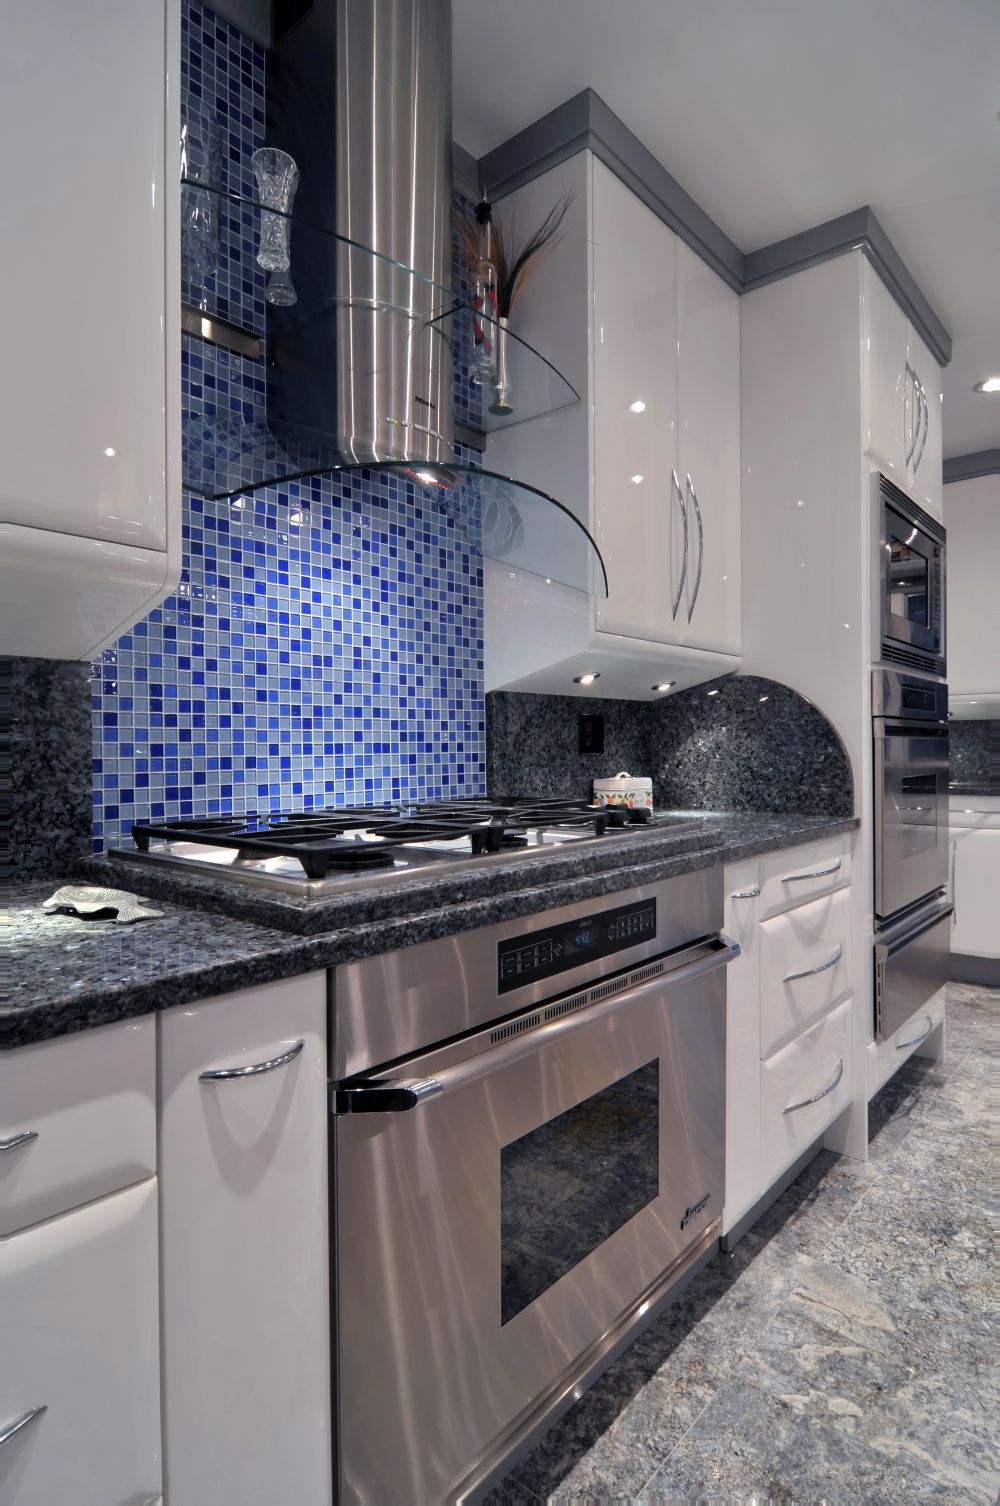 Küchen design pop blue and grey glass tile mosaic adds pop behind stainless dacor